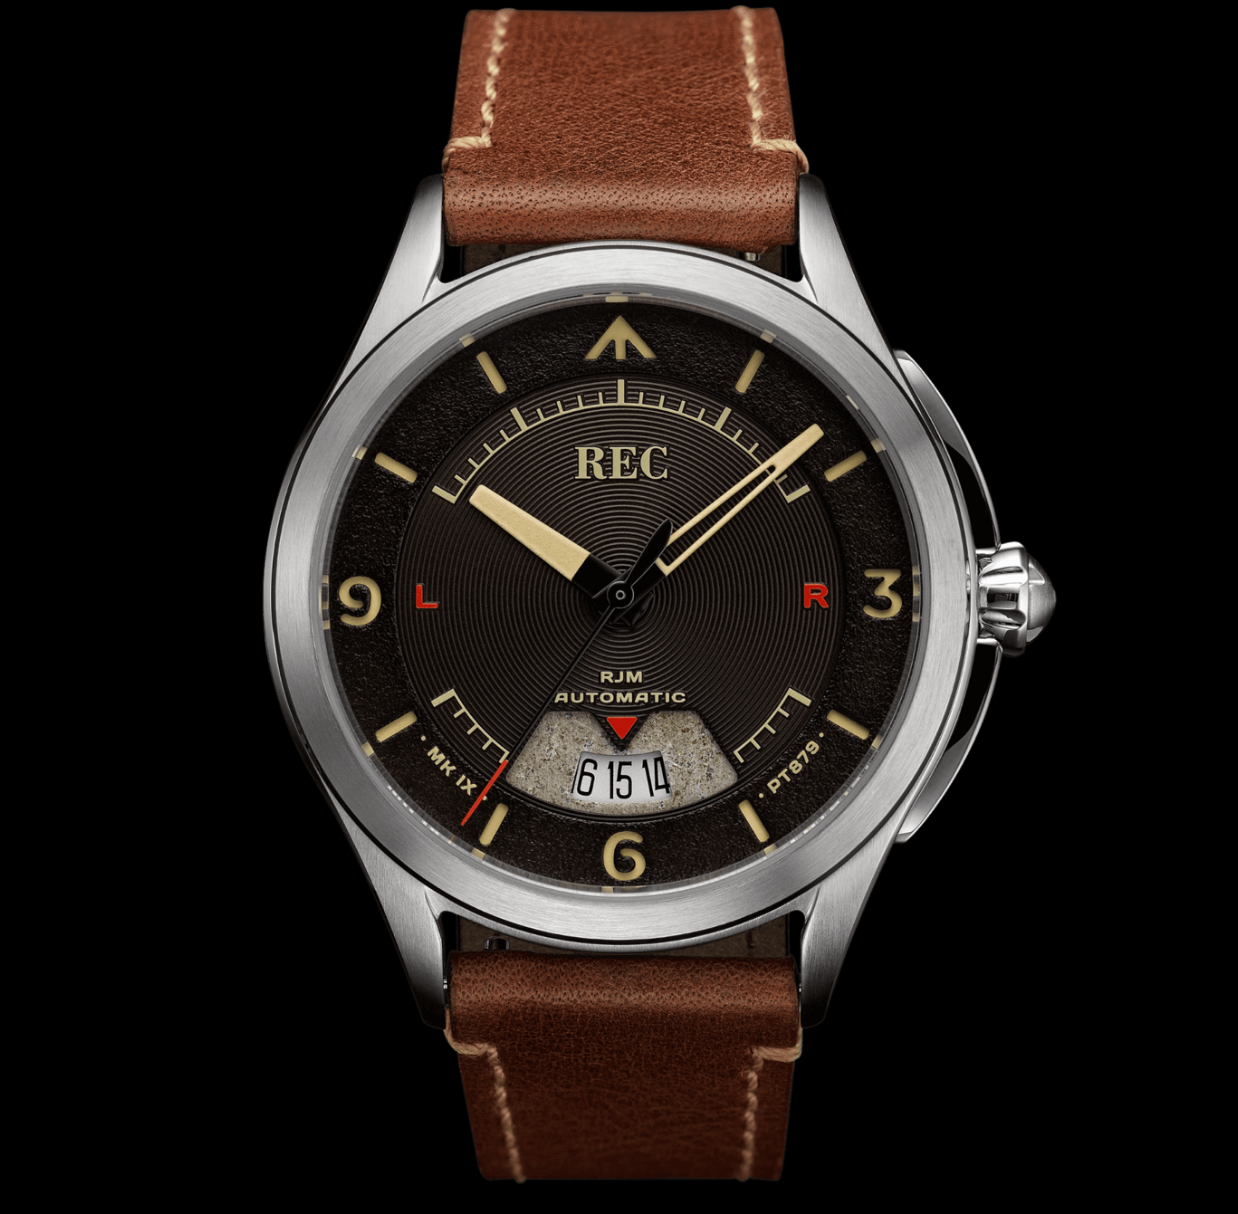 REC RJM02 Automatic strap watch